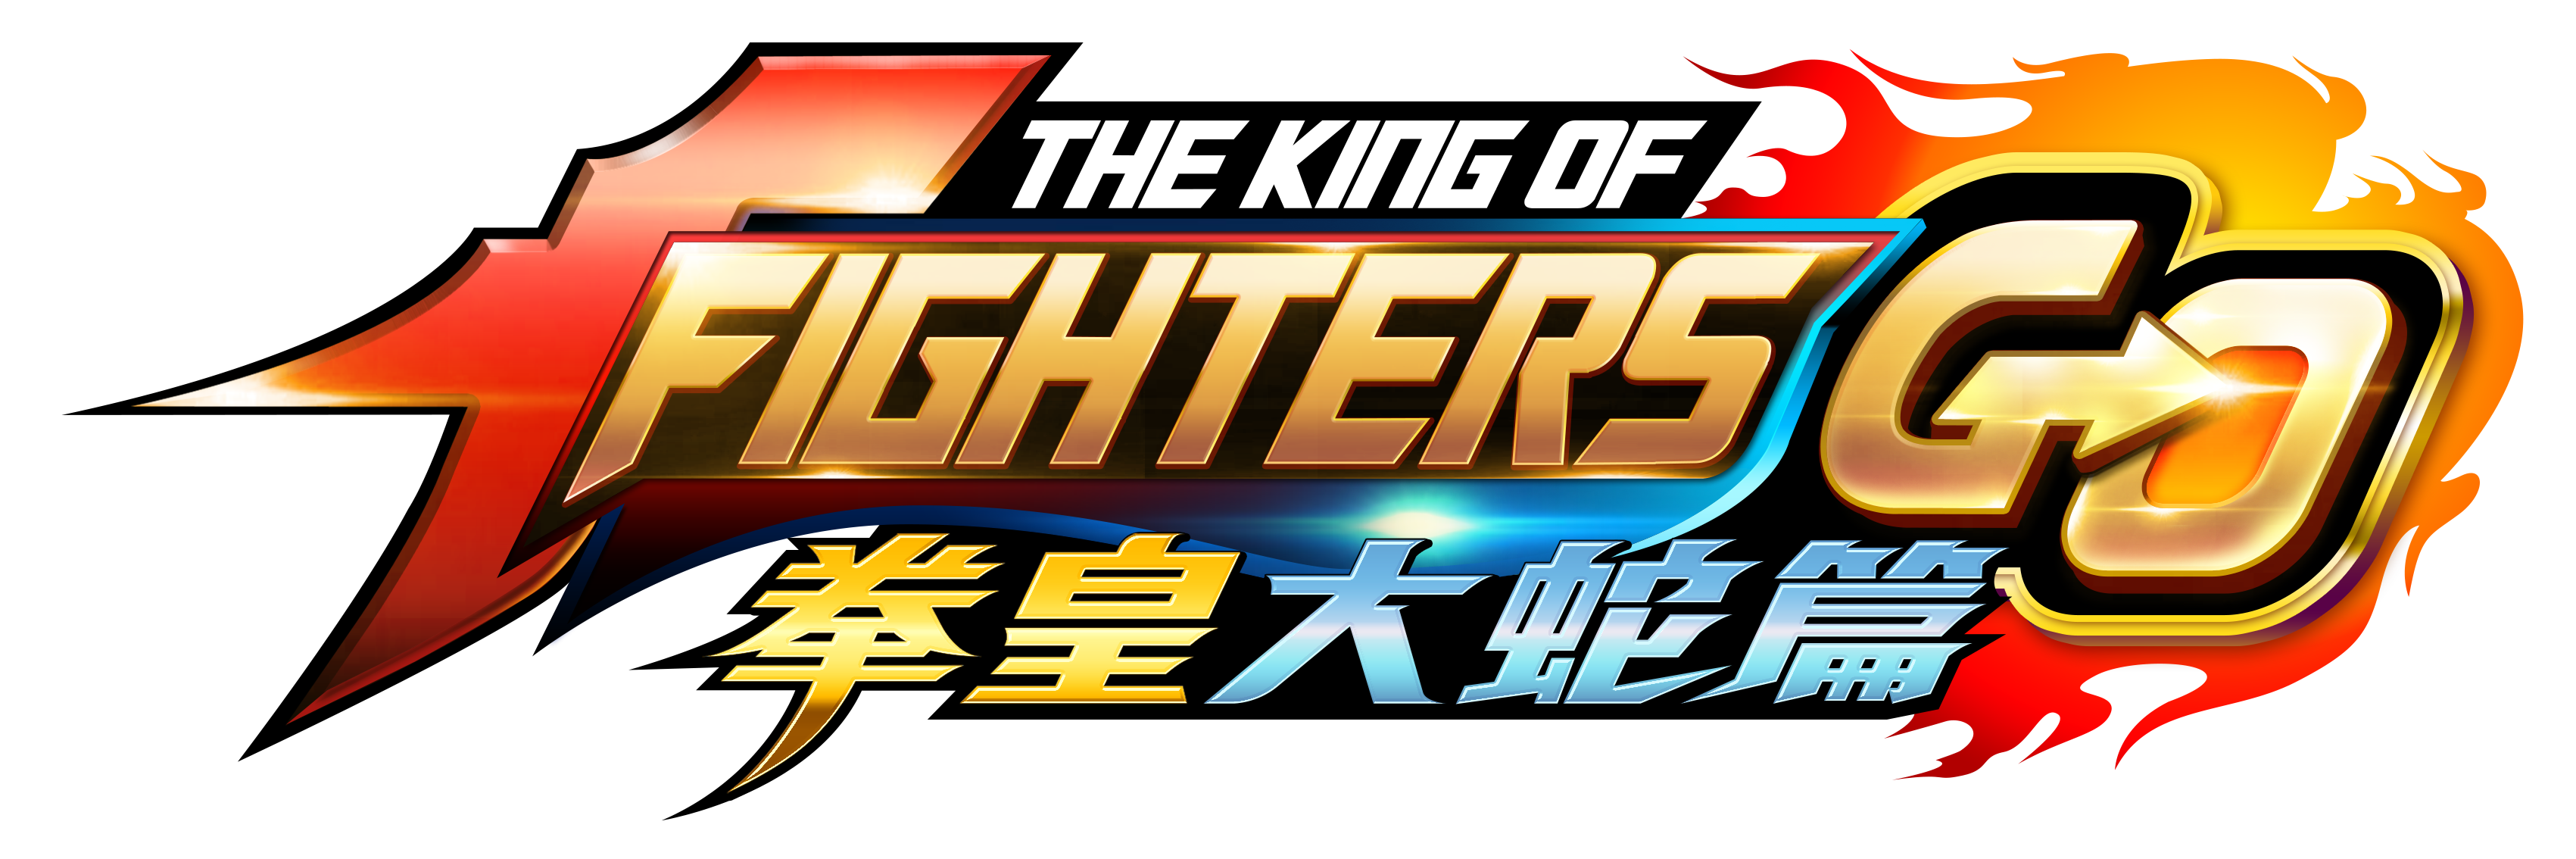 The King of Fighters: Orochi Saga GO Revealed.